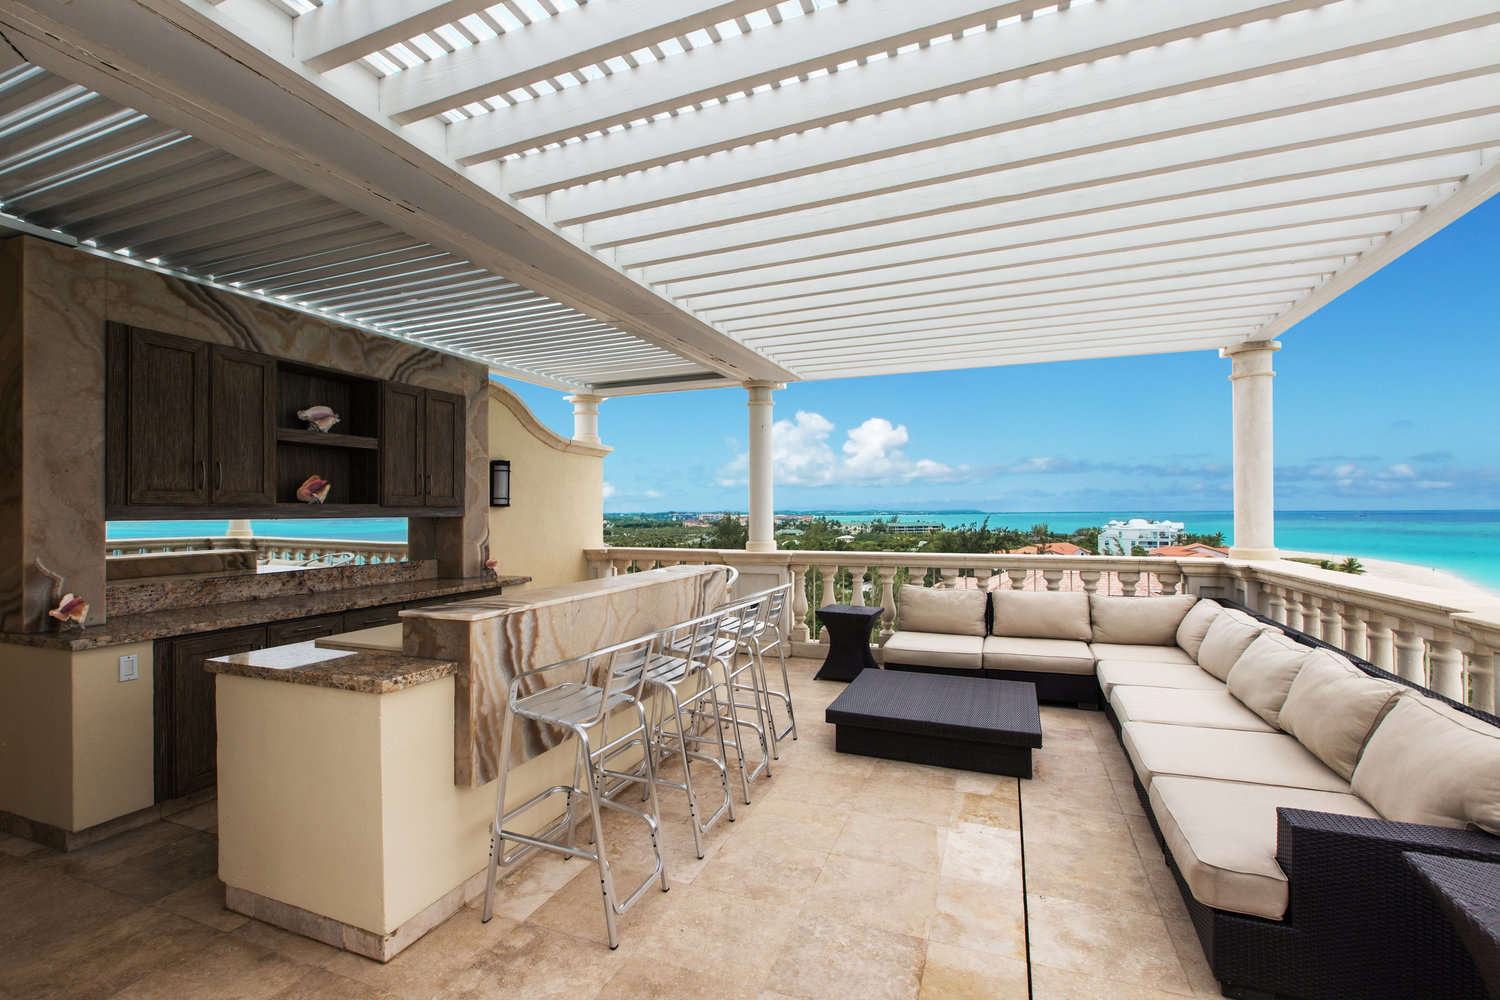 Luxury villa rentals caribbean - Turks and caicos - Providenciales - Grace bay - Penthouse | Bianca Sands - Image 1/14